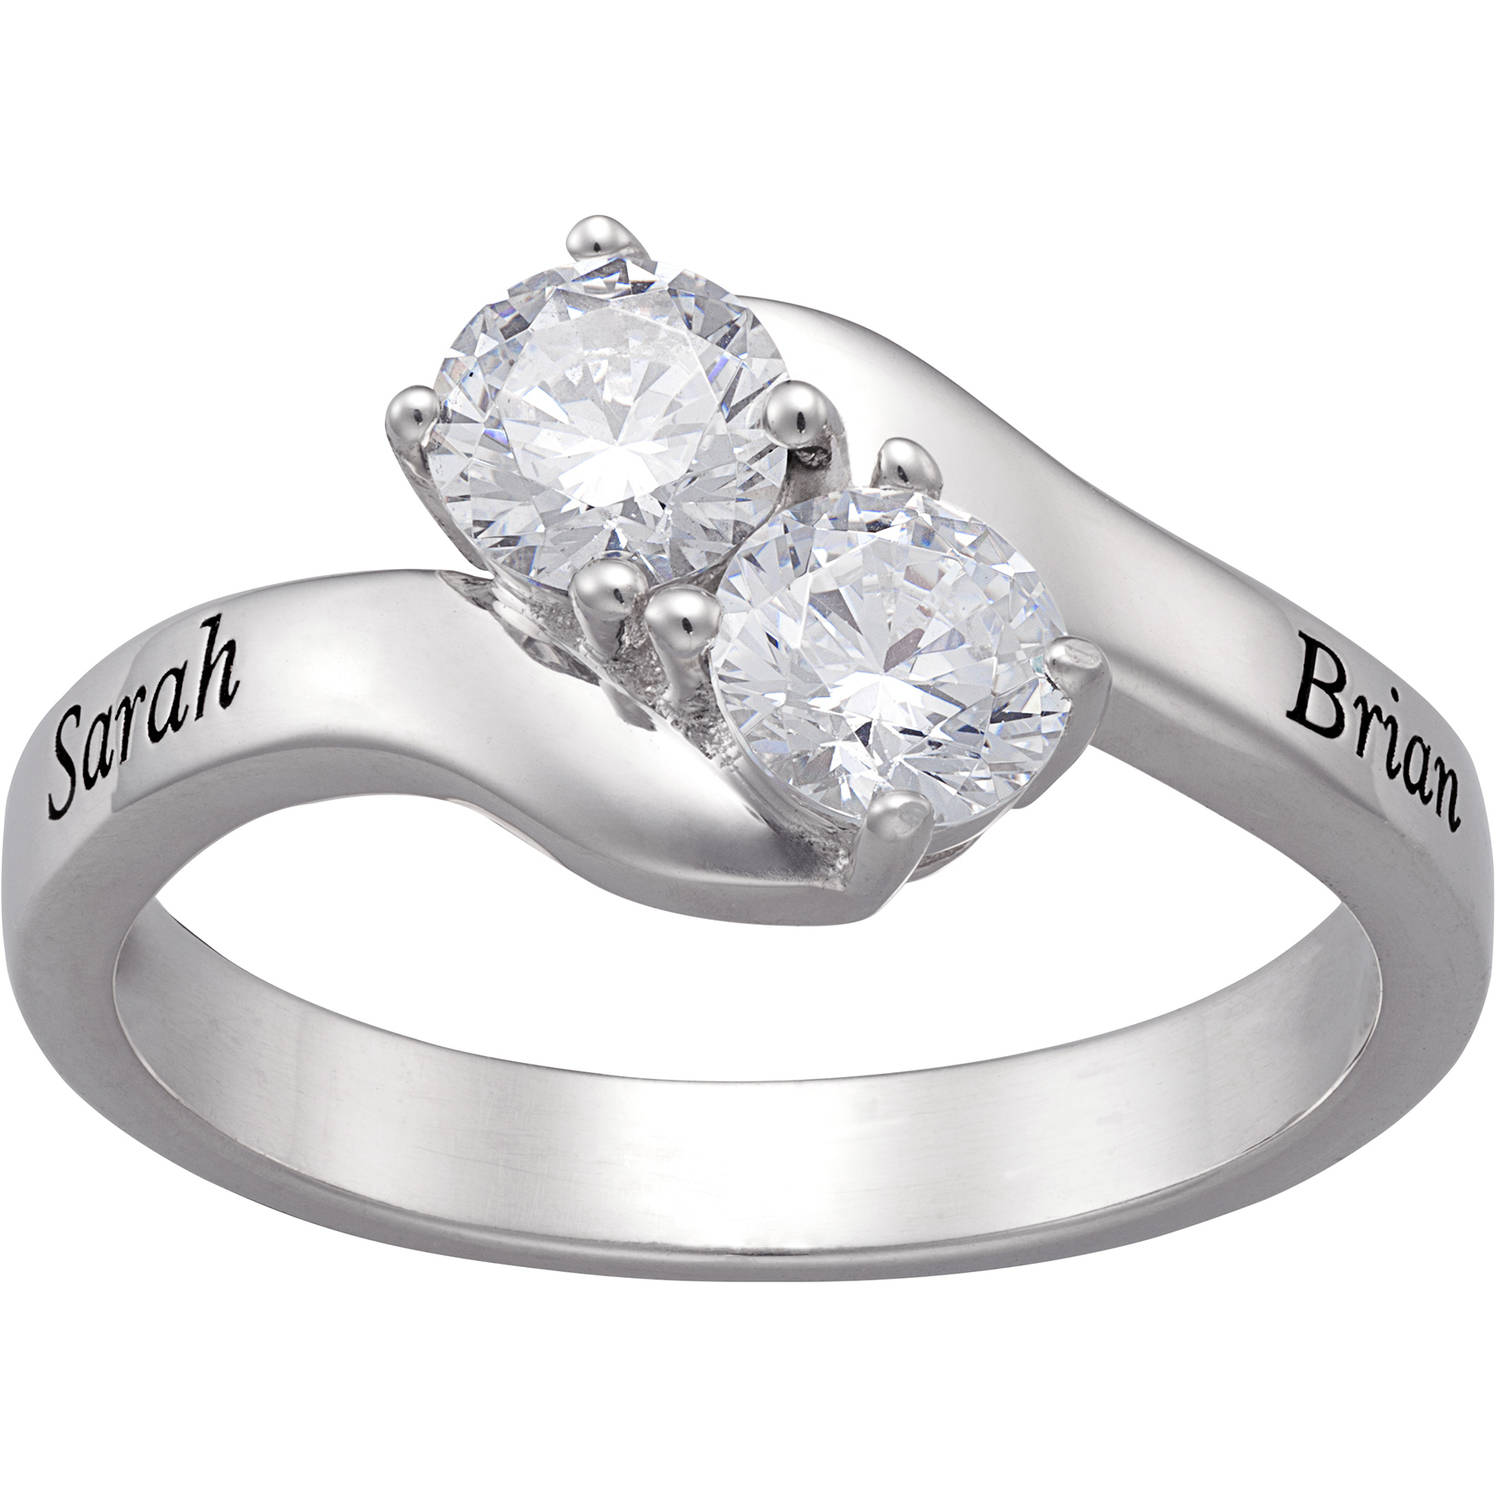 Personalized Round CZ Sterling Silver Bypass Duo Engraved Engagement Ring